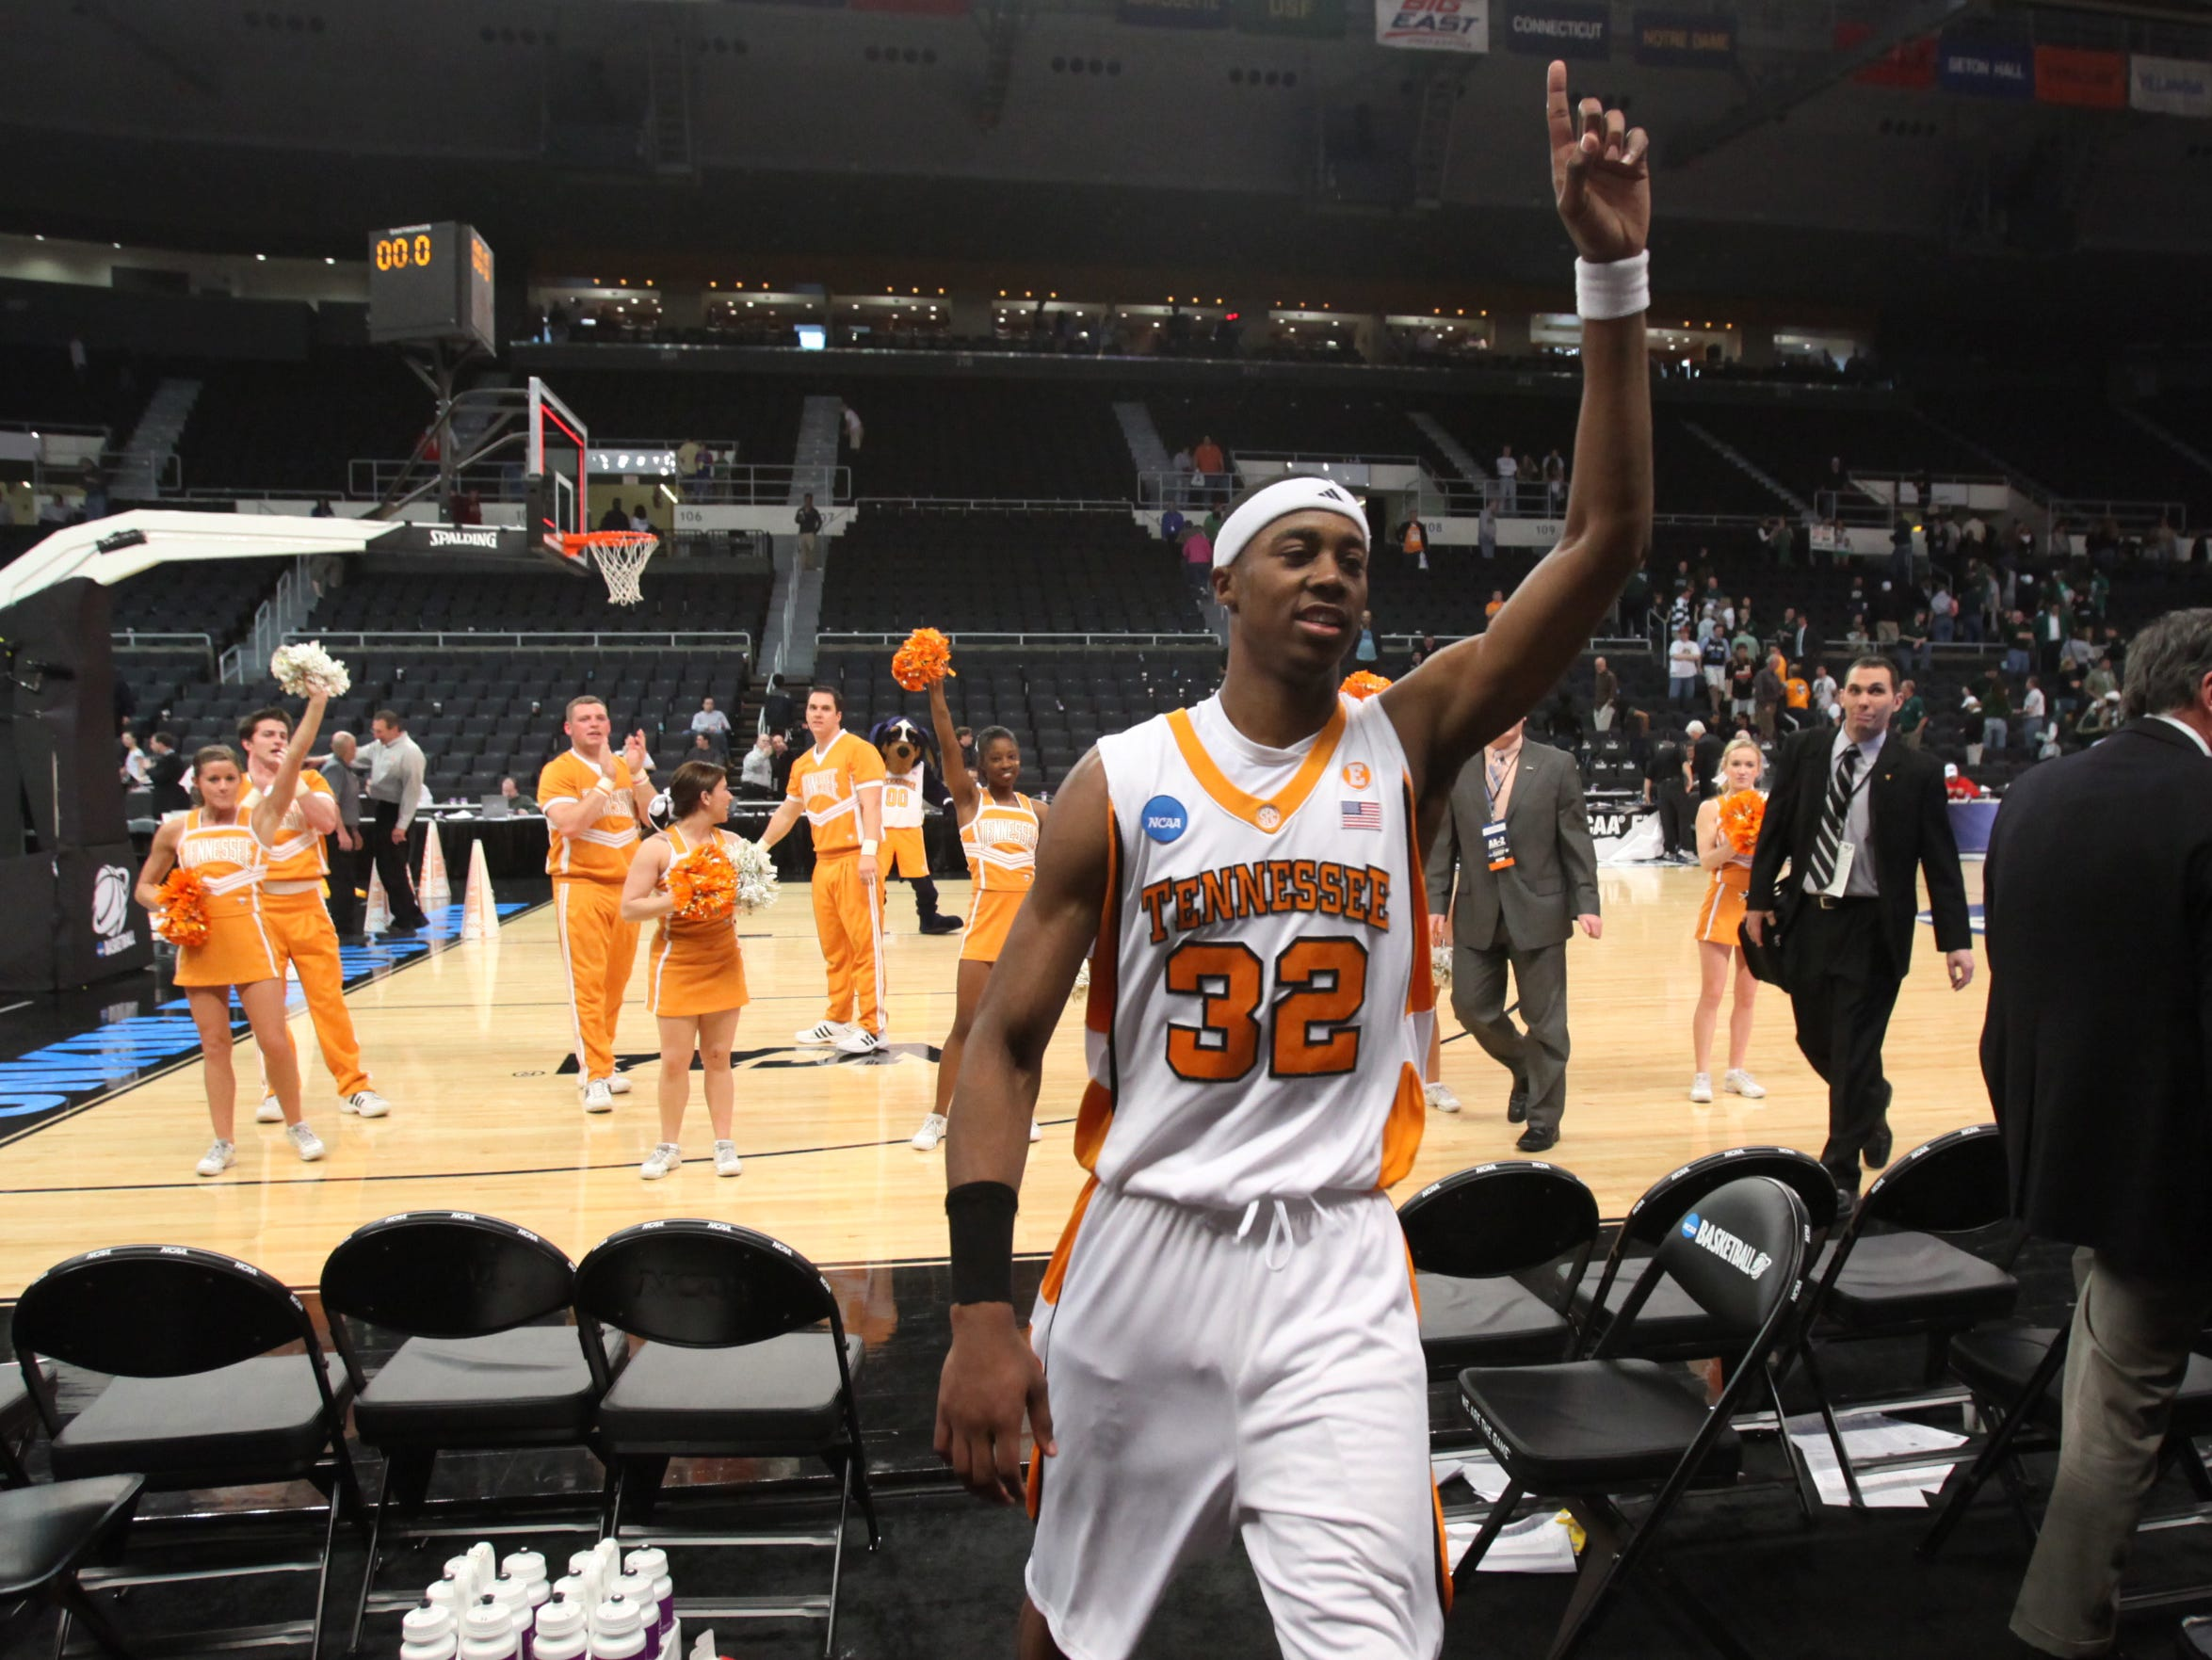 Scotty Hopson leaves the court after the Vols defeated the Ohio Bobcats 83-68 during the second round of the NCAA tournament in Providence, R.I. Saturday, Mar. 20, 2010.